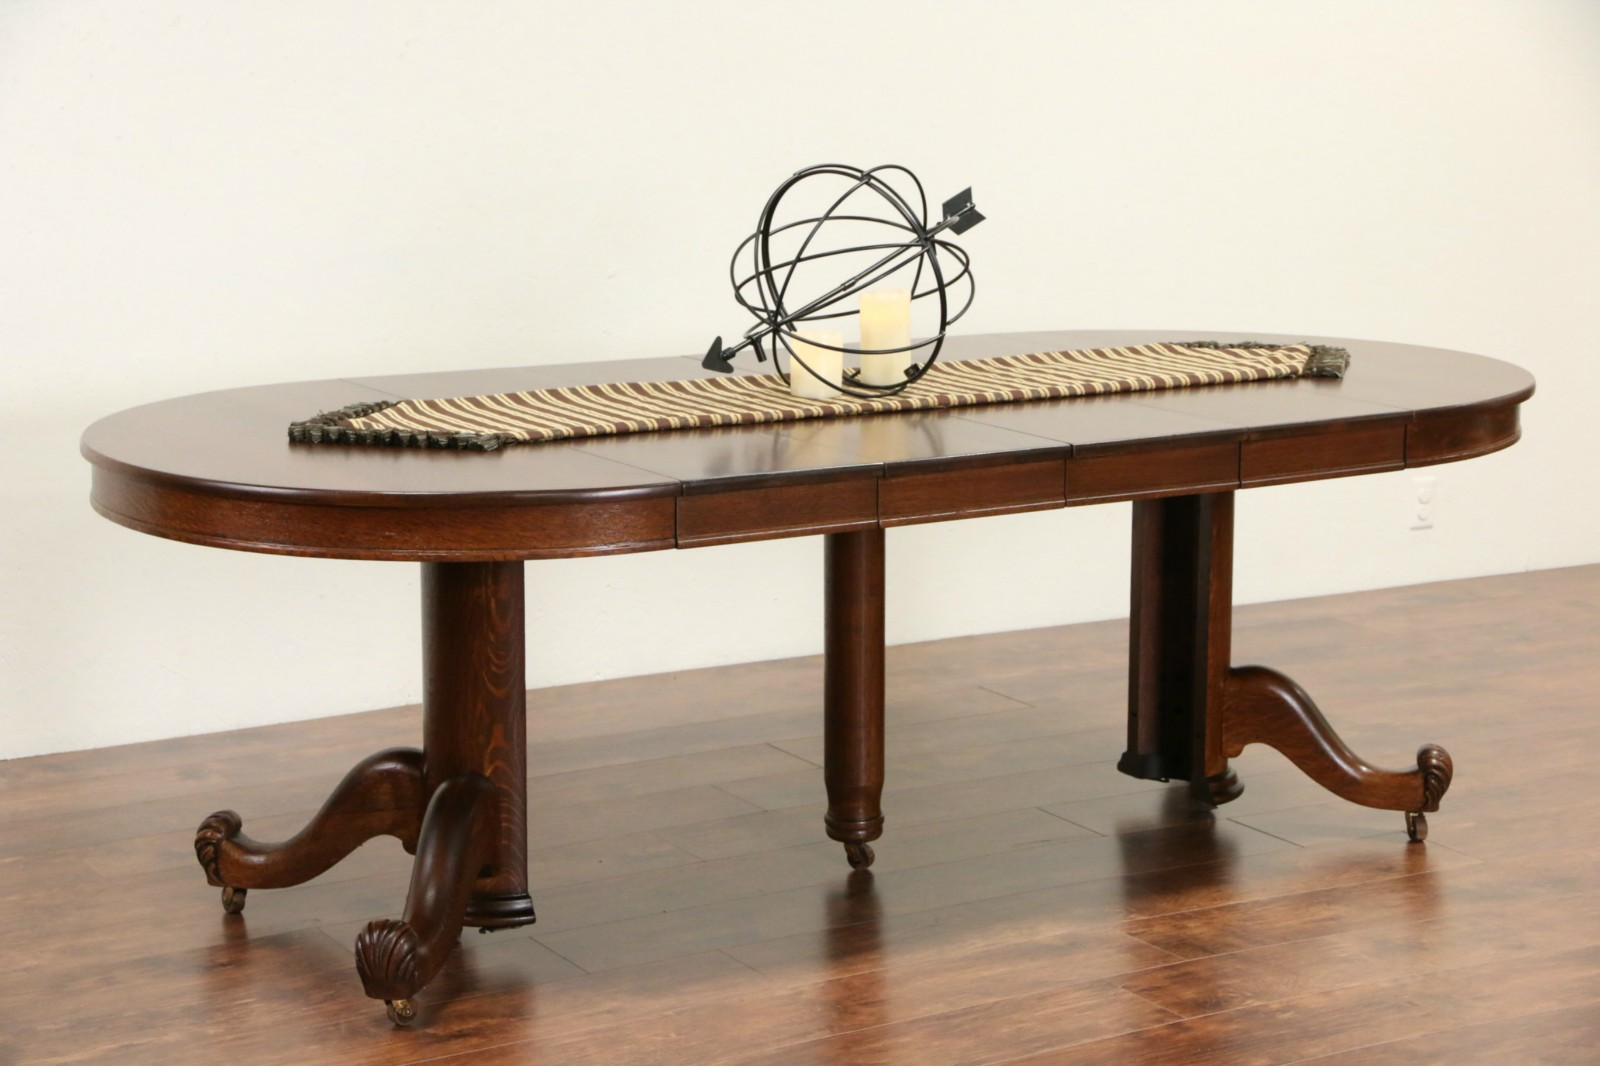 Sold oak 44 round 1900 antique dining table pedestal for 44 round dining table